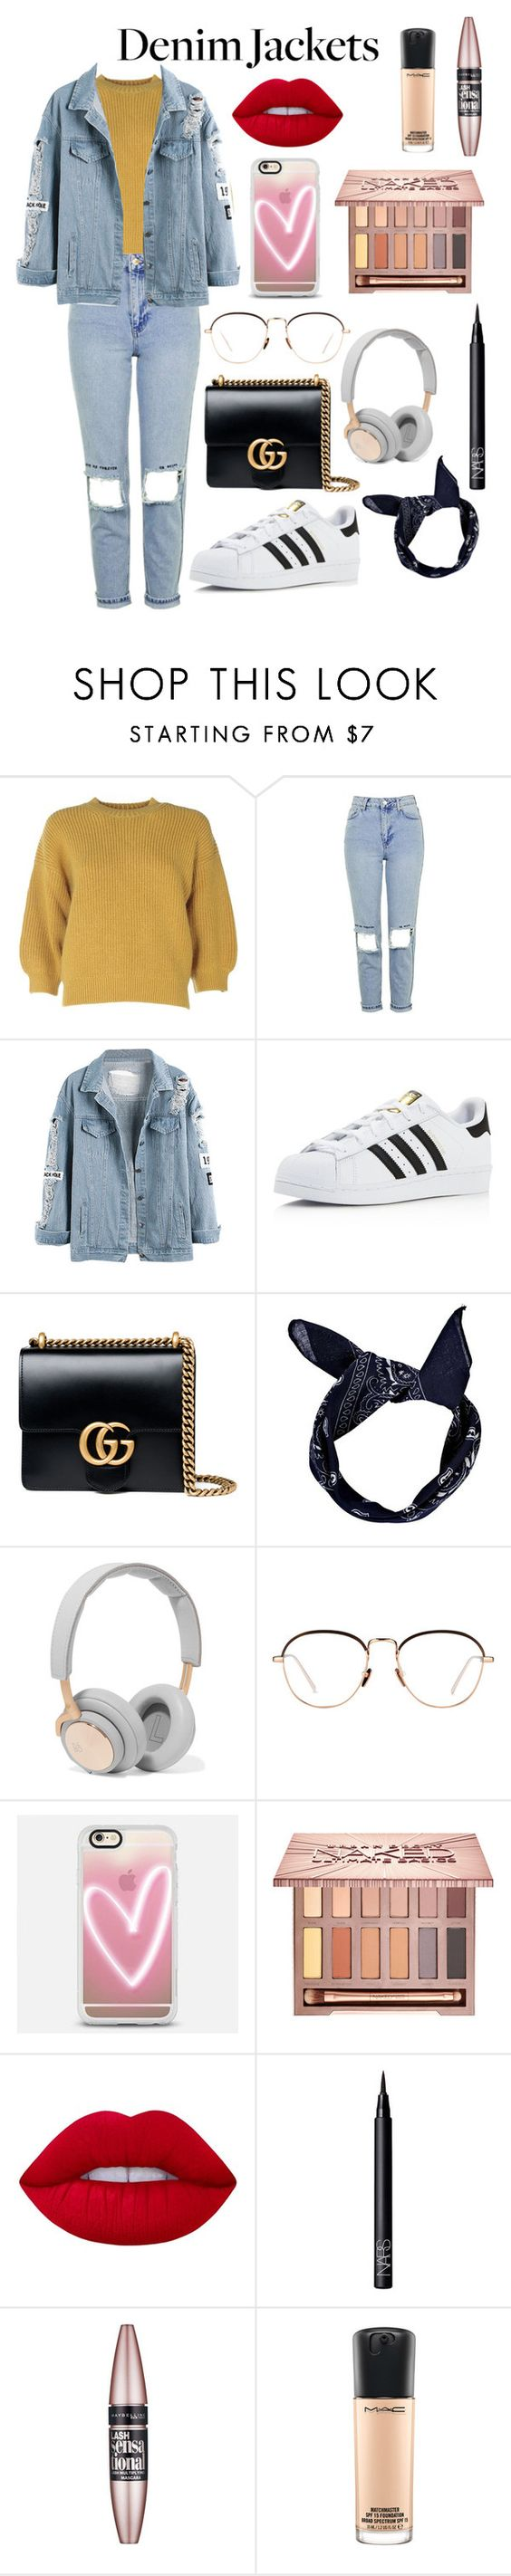 """""""Denim jackets"""" by nanna1308 ❤ liked on Polyvore featuring 3.1 Phillip Lim, Topshop, adidas, Gucci, Boohoo, B&O Play, Linda Farrow, Casetify, Urban Decay and Lime Crime"""